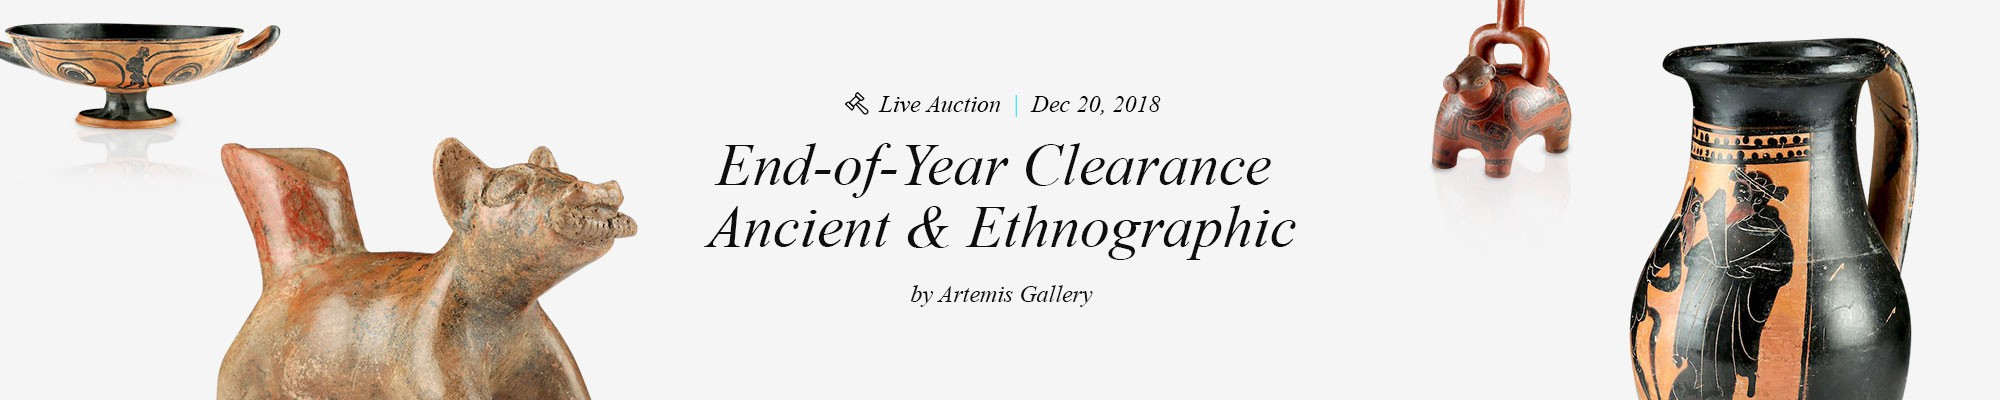 end-of-year-clearance-ancient-ethnographic-artemis-gallery